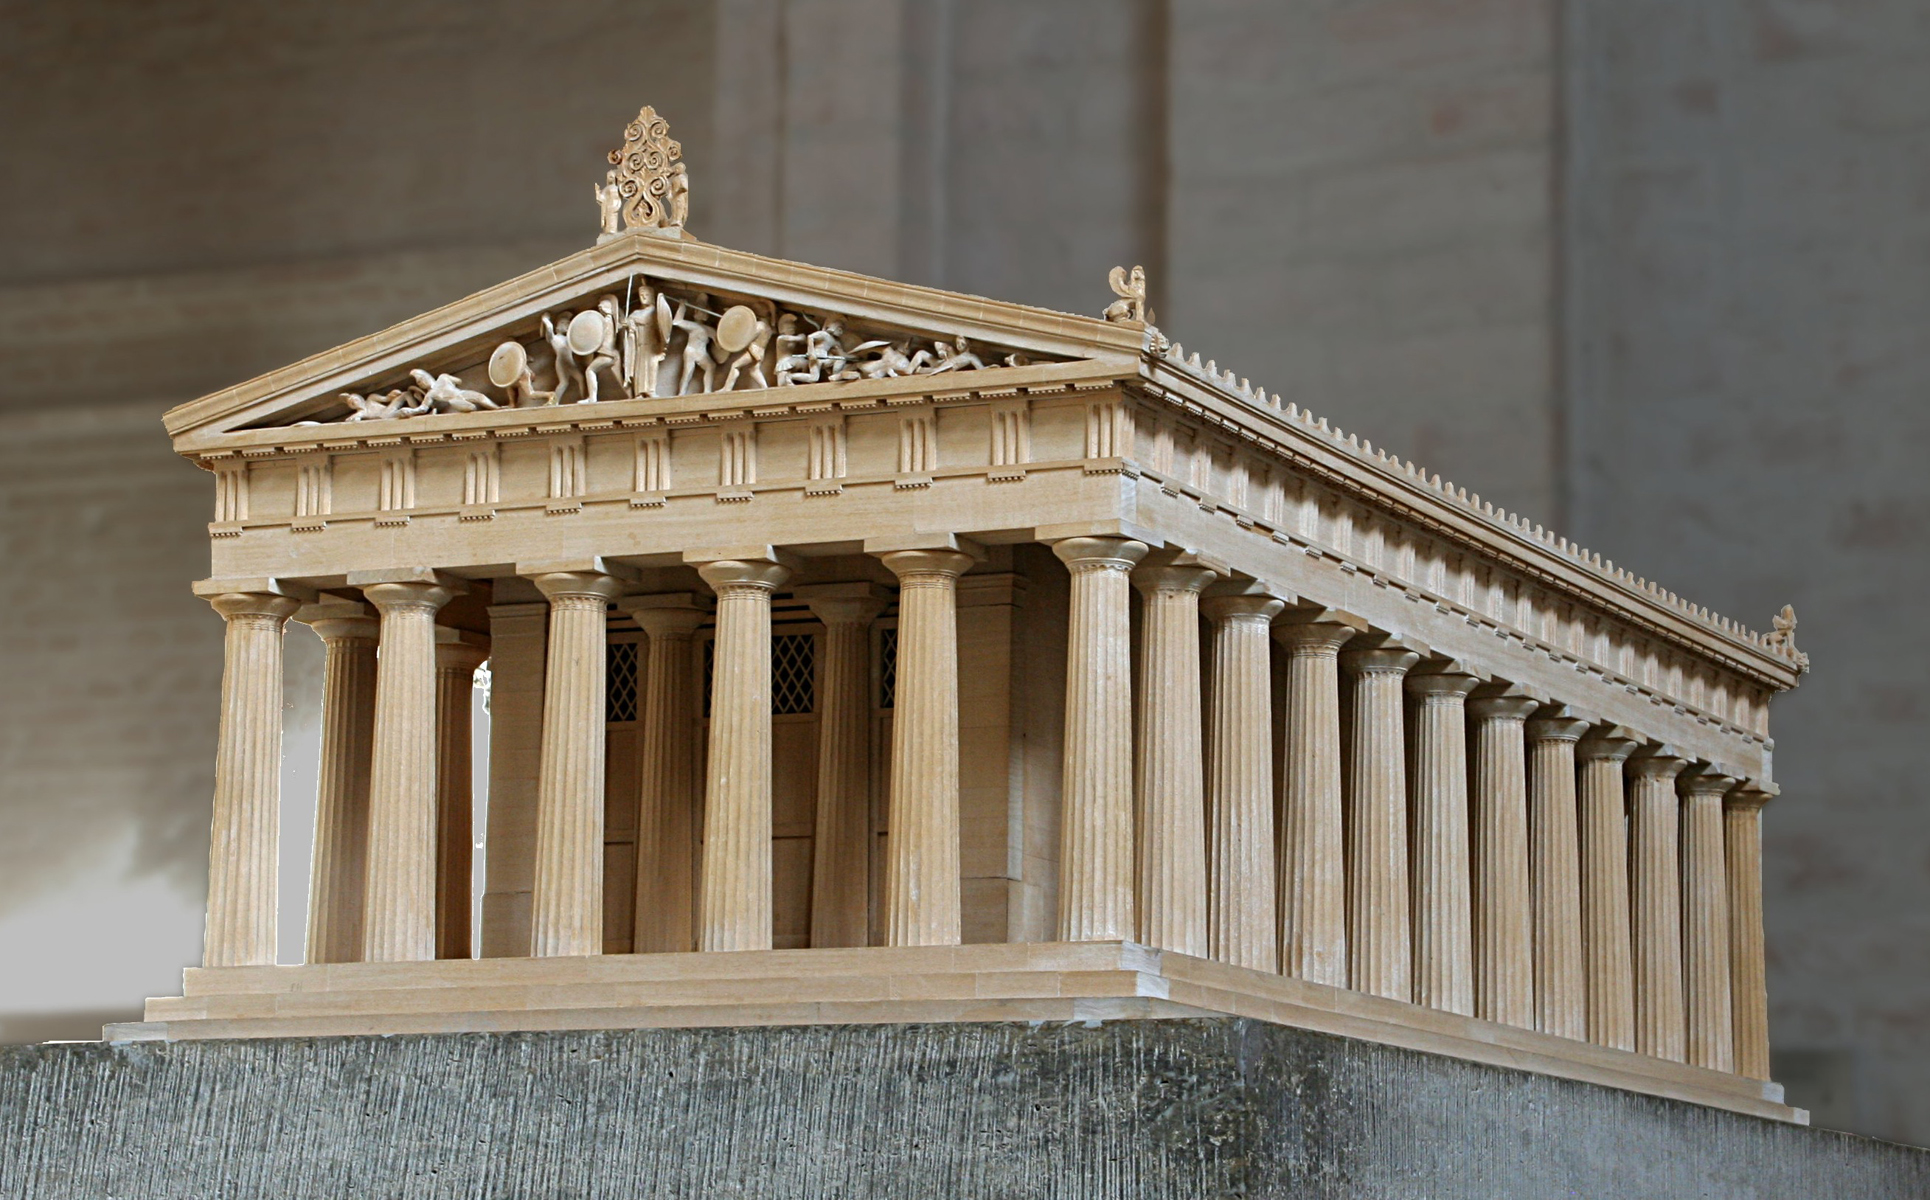 10 Things We Wouldn't Have Without Ancient Greece |Grecian Architecture